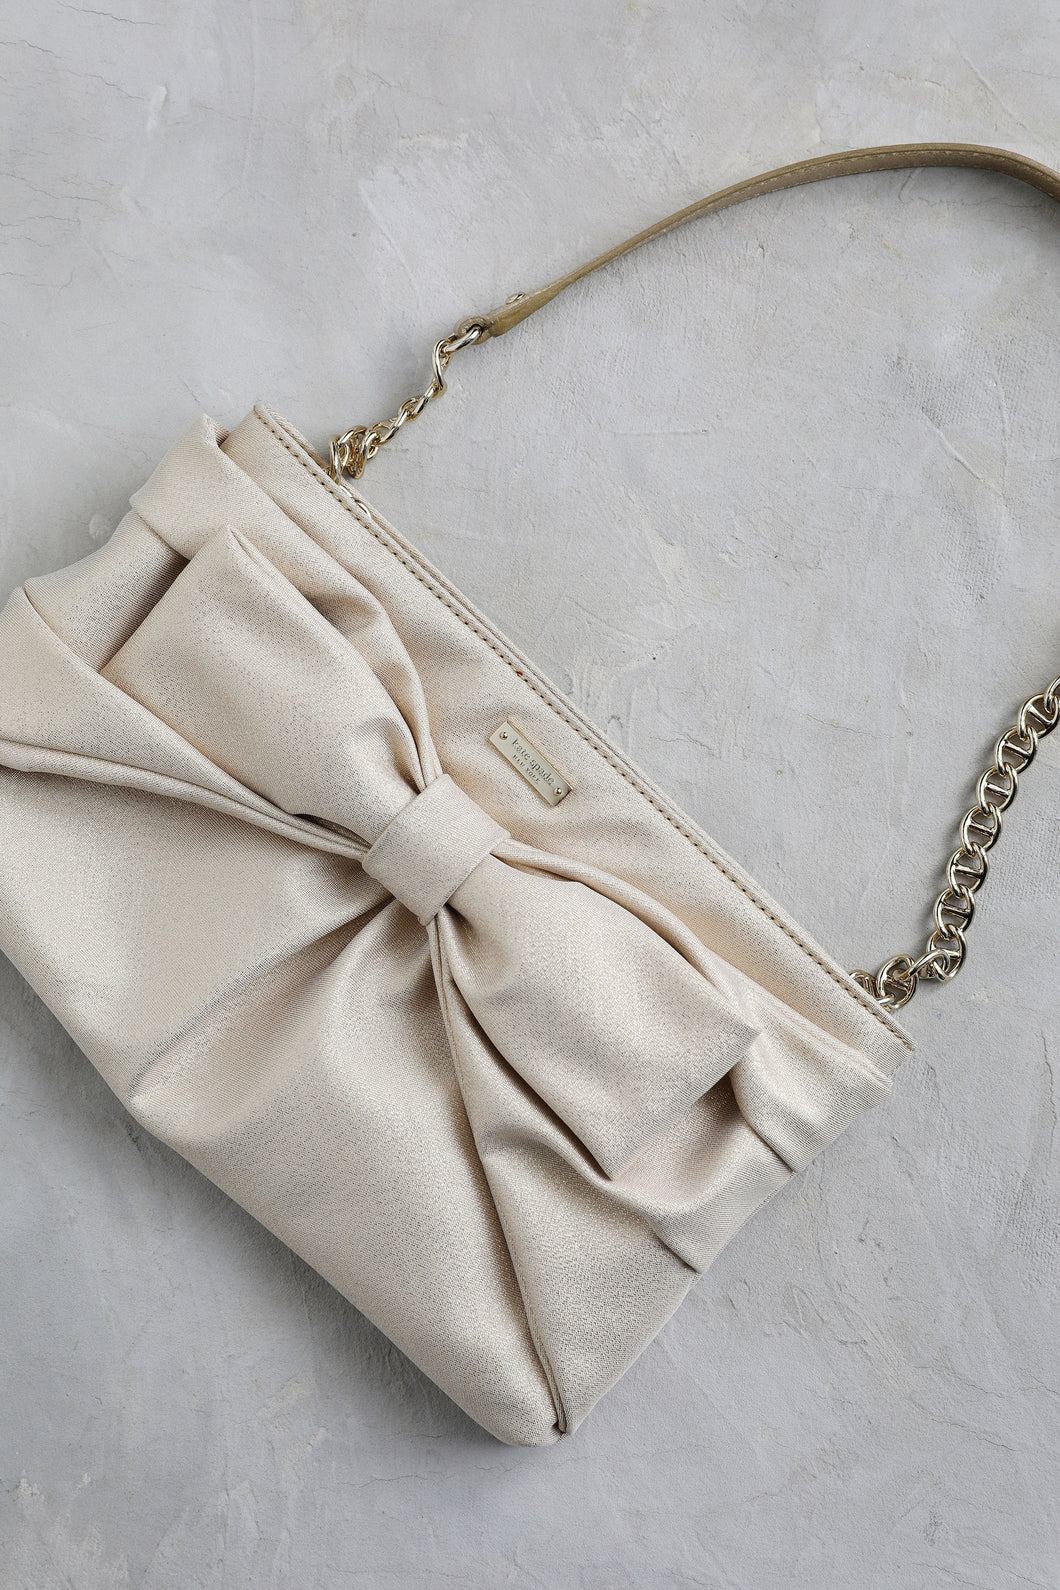 Gold Bow Kate Spade Purse